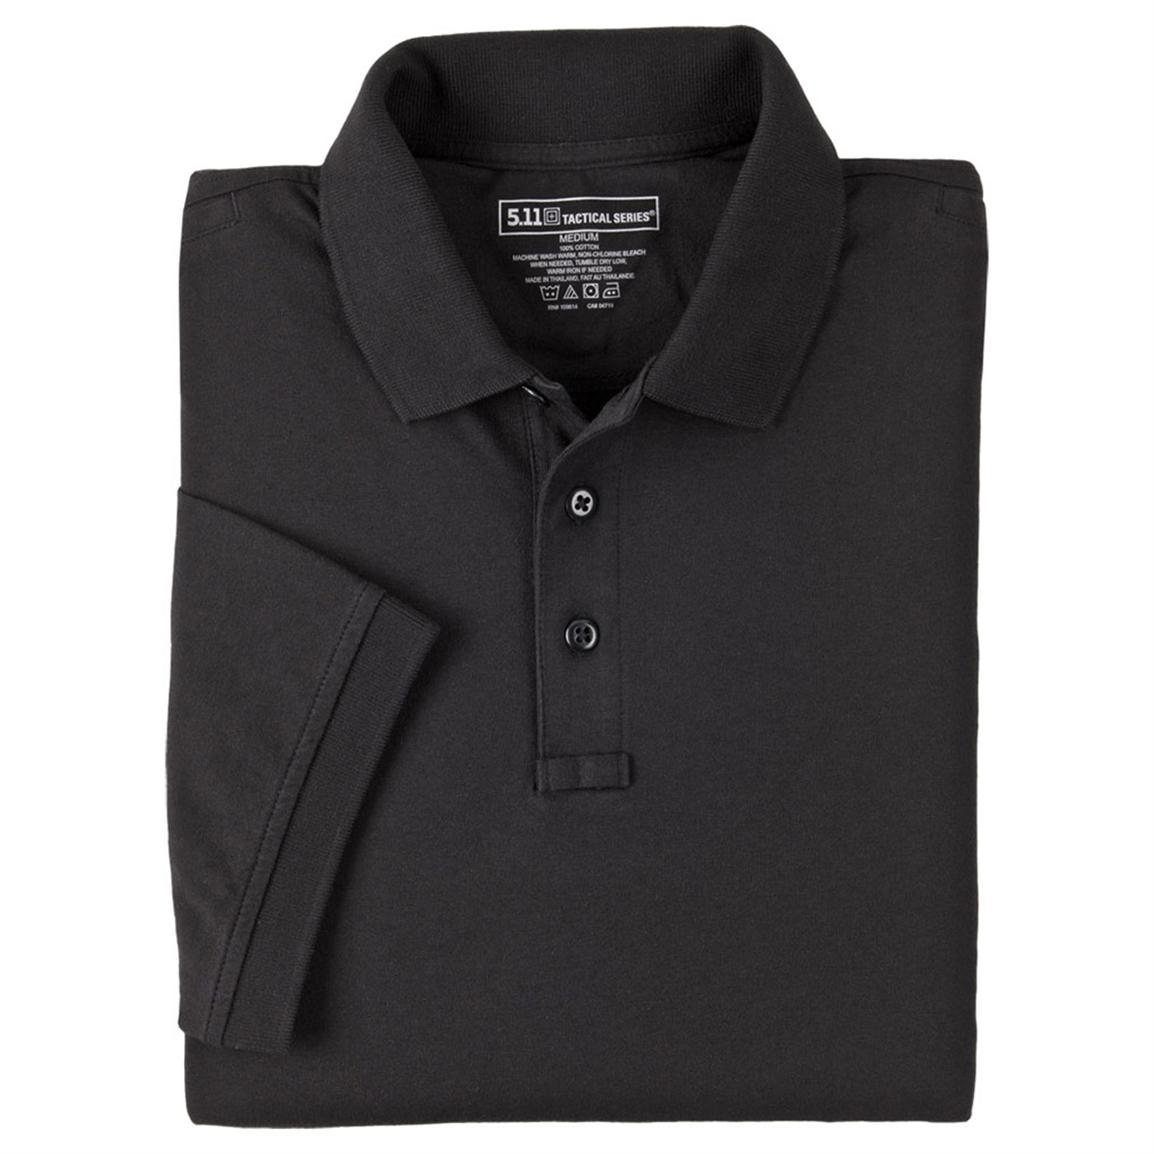 Tactical Jersey Polo from 5.11 Tactical, Black